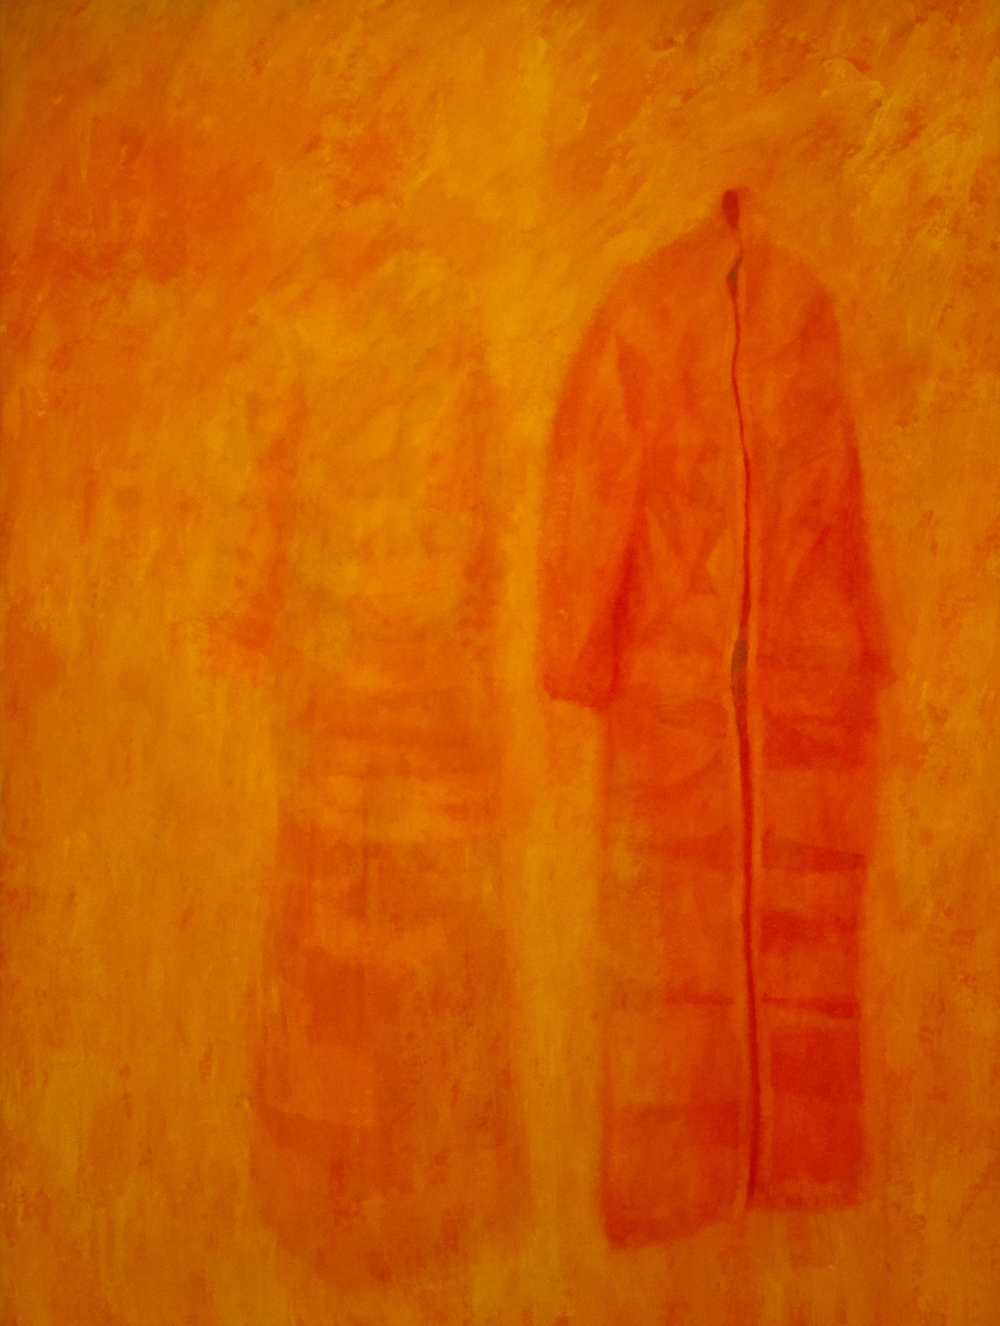 Fading 1. 2012 Acrylic on calico 160 x 120cm